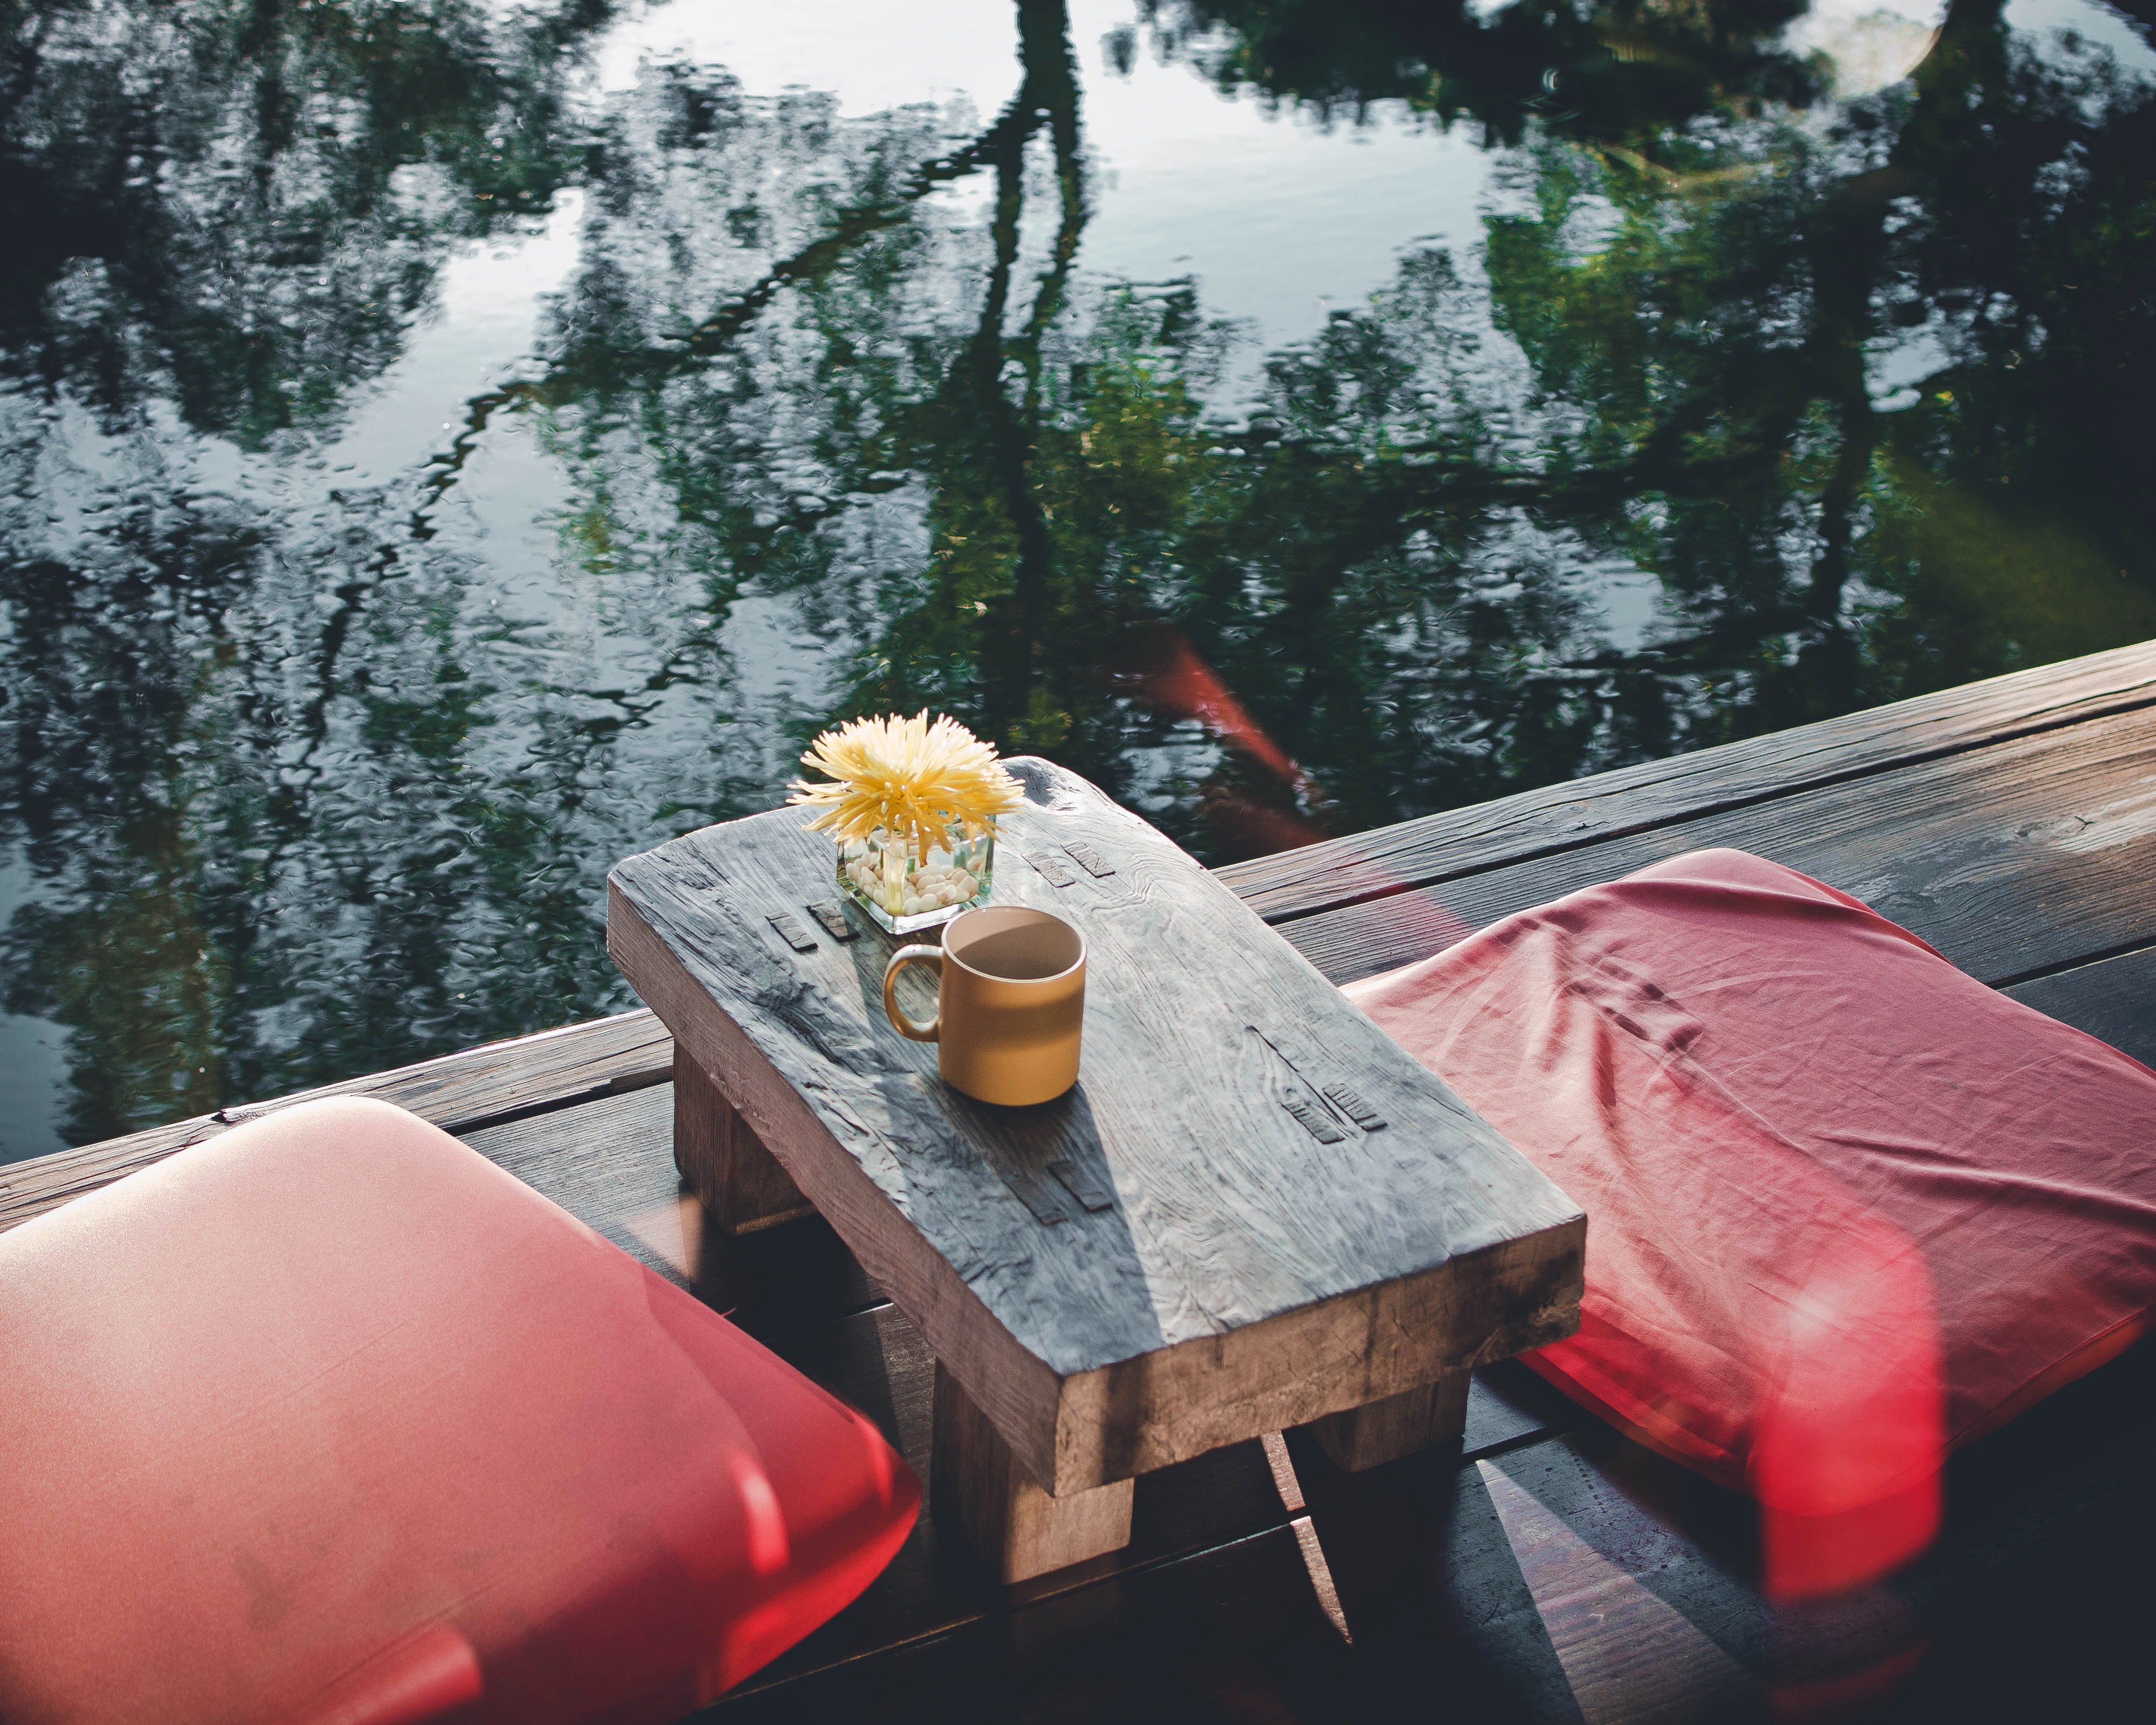 two red cushions near body of water